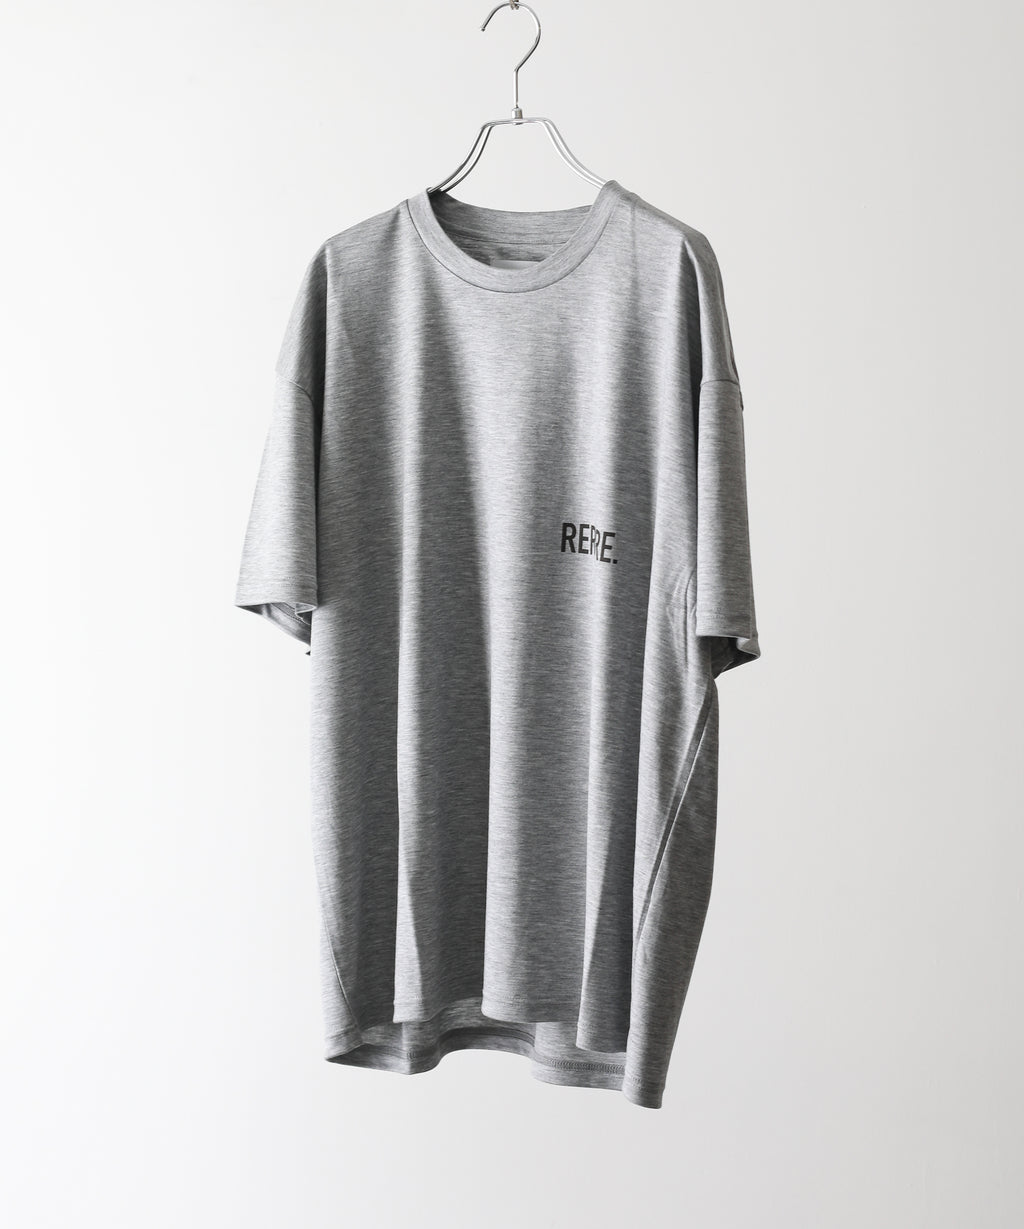 stein シュタイン PRINT TEE - RE LOOP - GRAY  ST.257 session